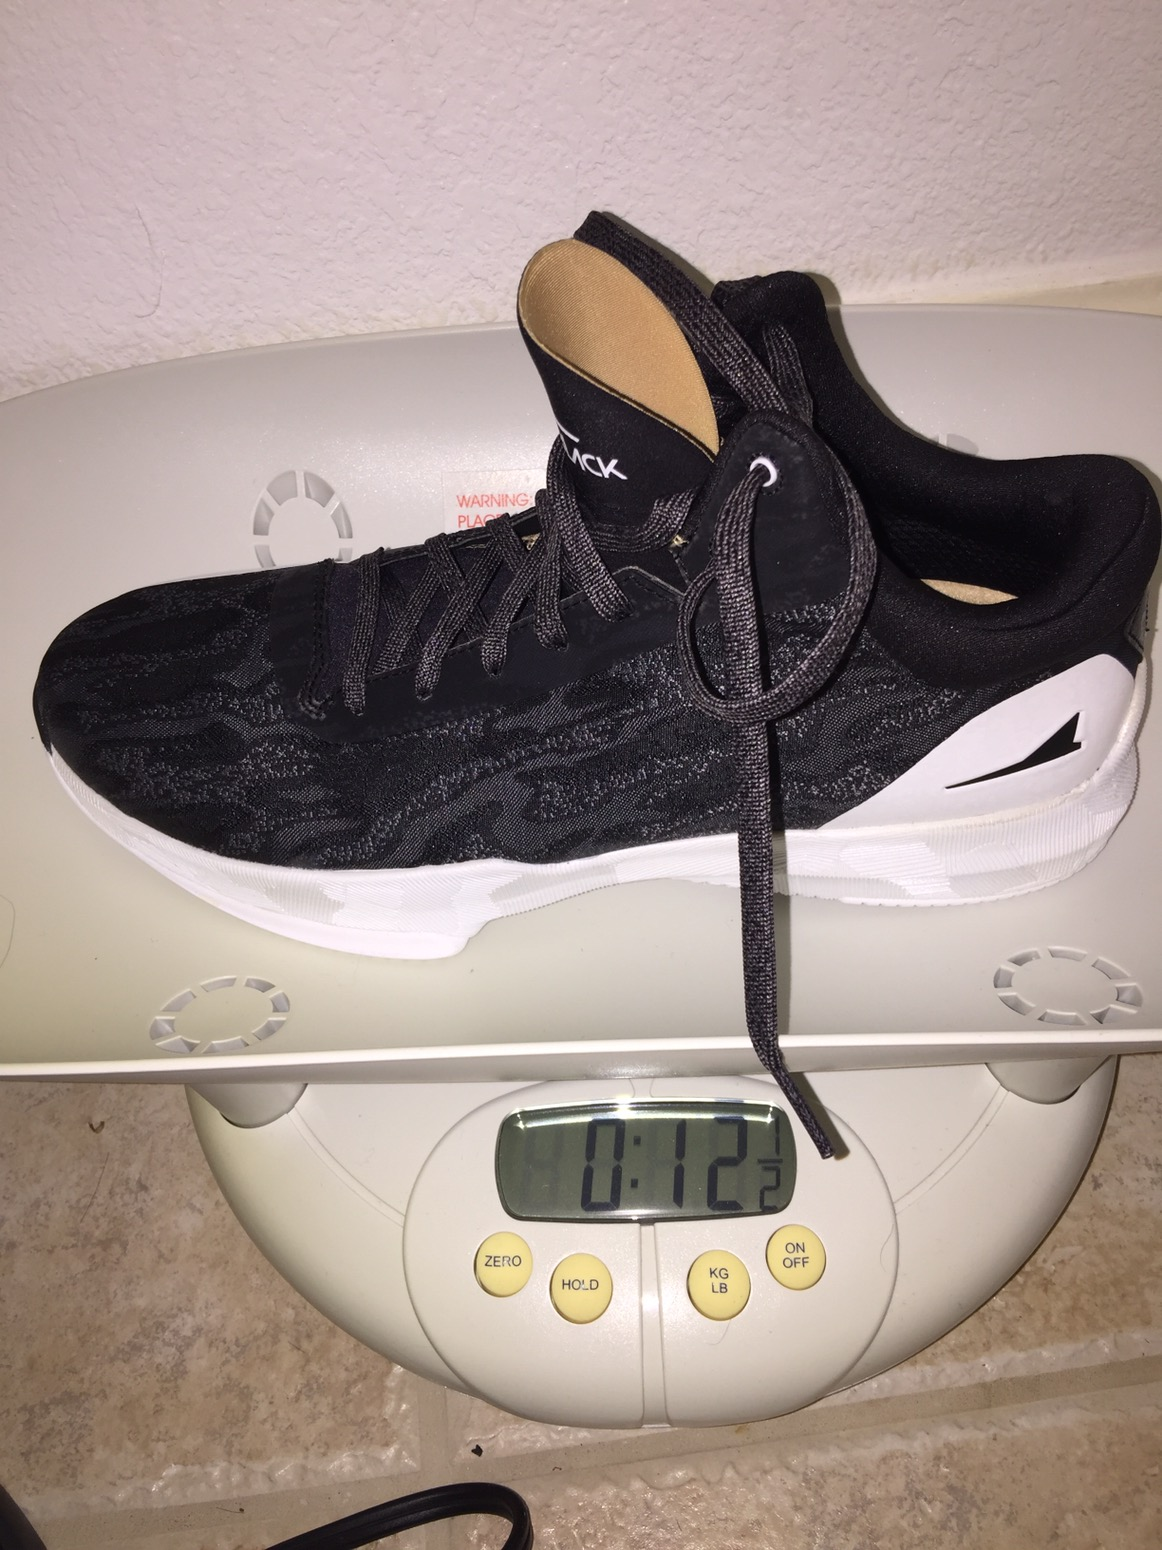 f43965c00c3 12.5 oz is light but not Kobe 6 light (9.5 oz) but it feels light on foot  which is what counts. It is still 3.5 oz lighter than the Crazylight Boost  2016 ...